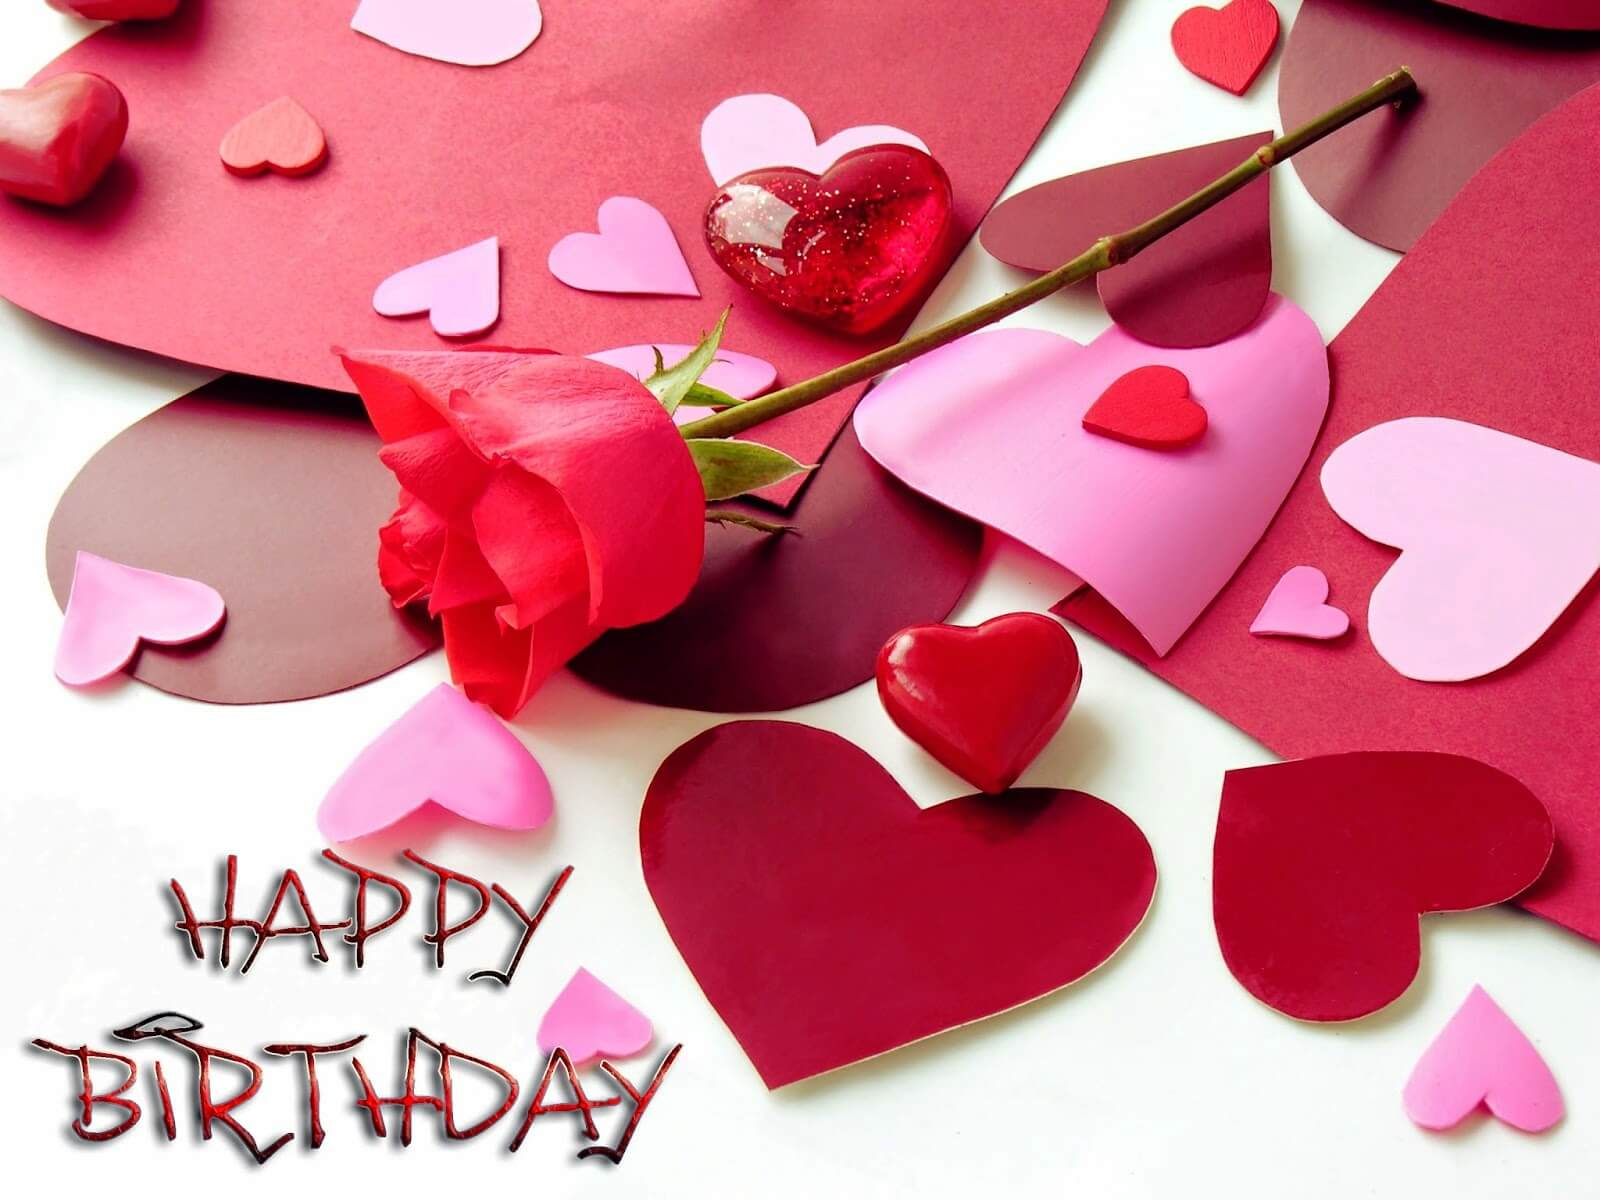 happy birthday pictures and wishes ; special-happy-birthday-wishes-lover-2